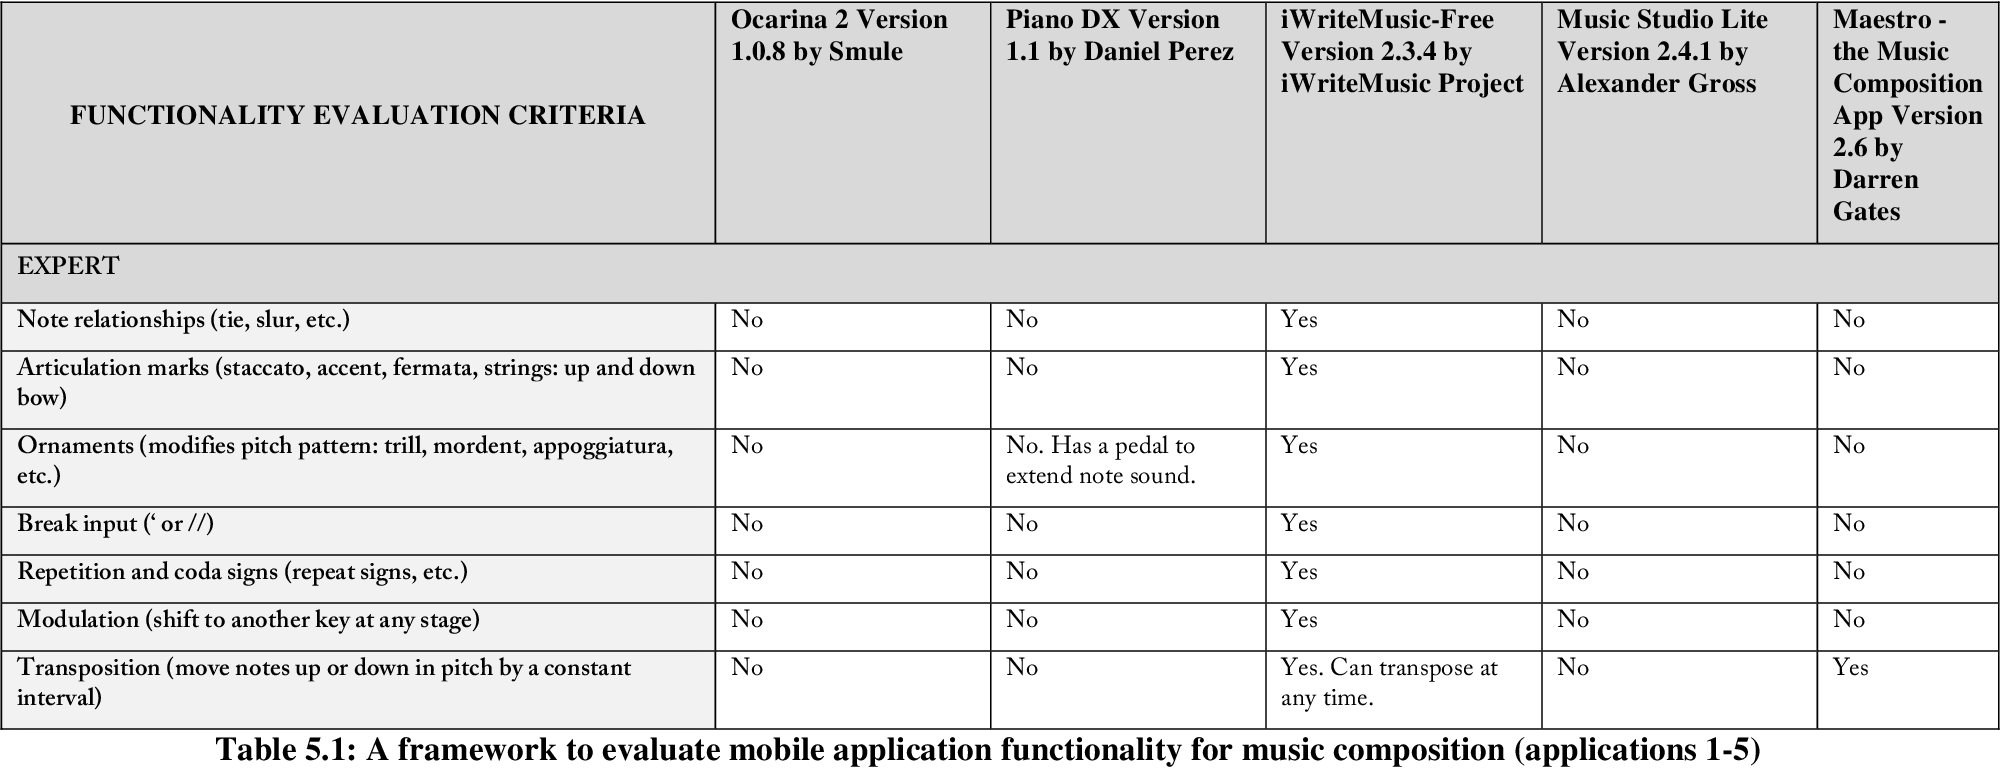 A framework to evaluate the functionality of mobile